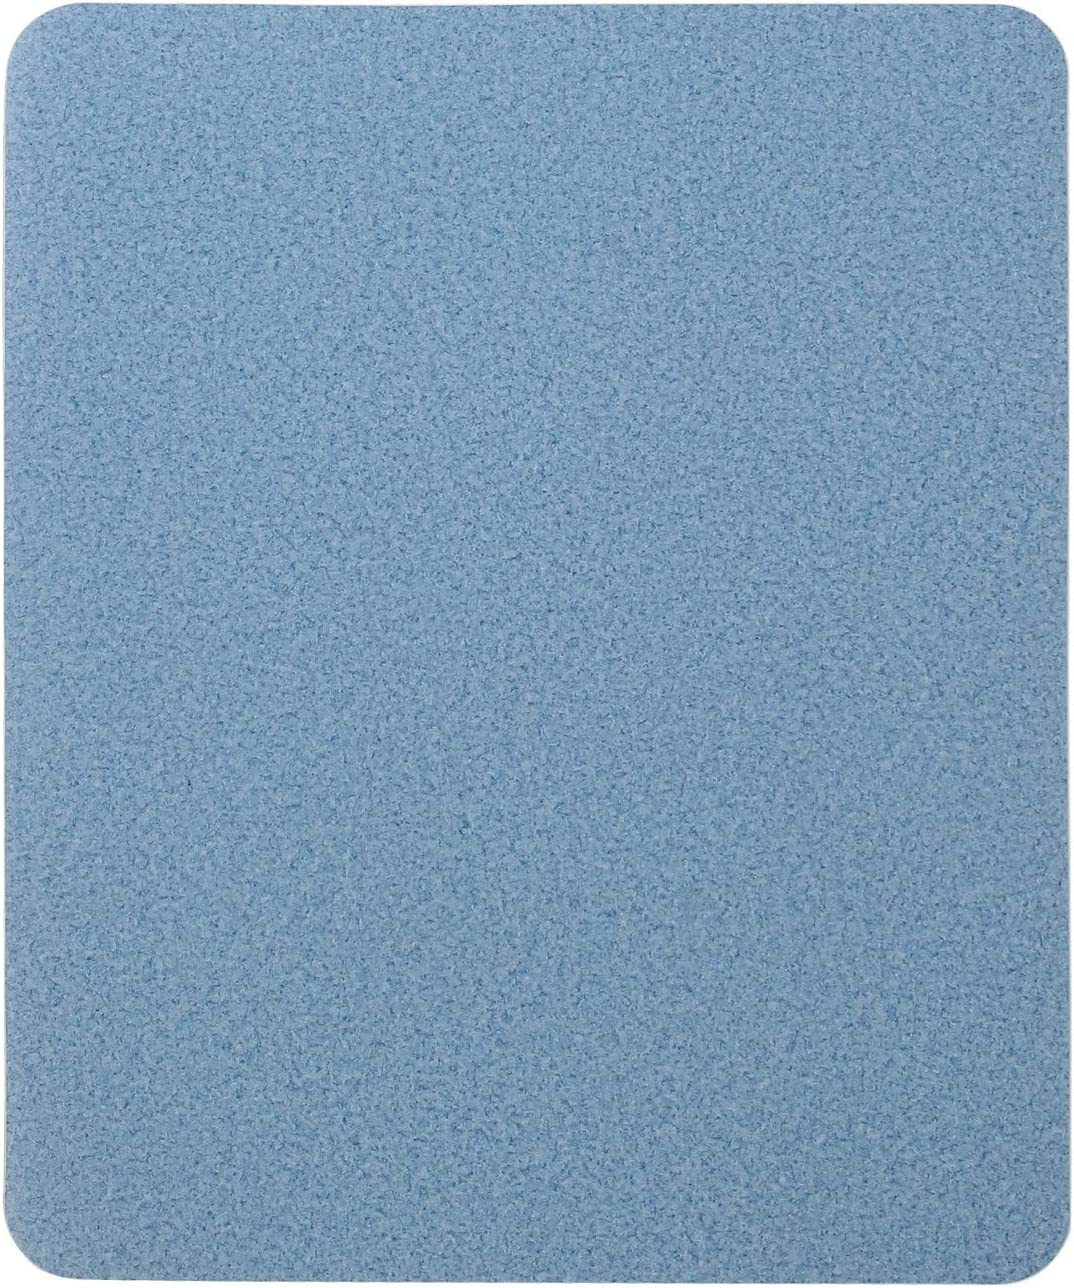 """MPLEYE Office Chair Mat for Hardwood Floor and Tile Floor 38""""×48""""1/8"""" Flat Without Curling Floor Mats for Computer Desk"""